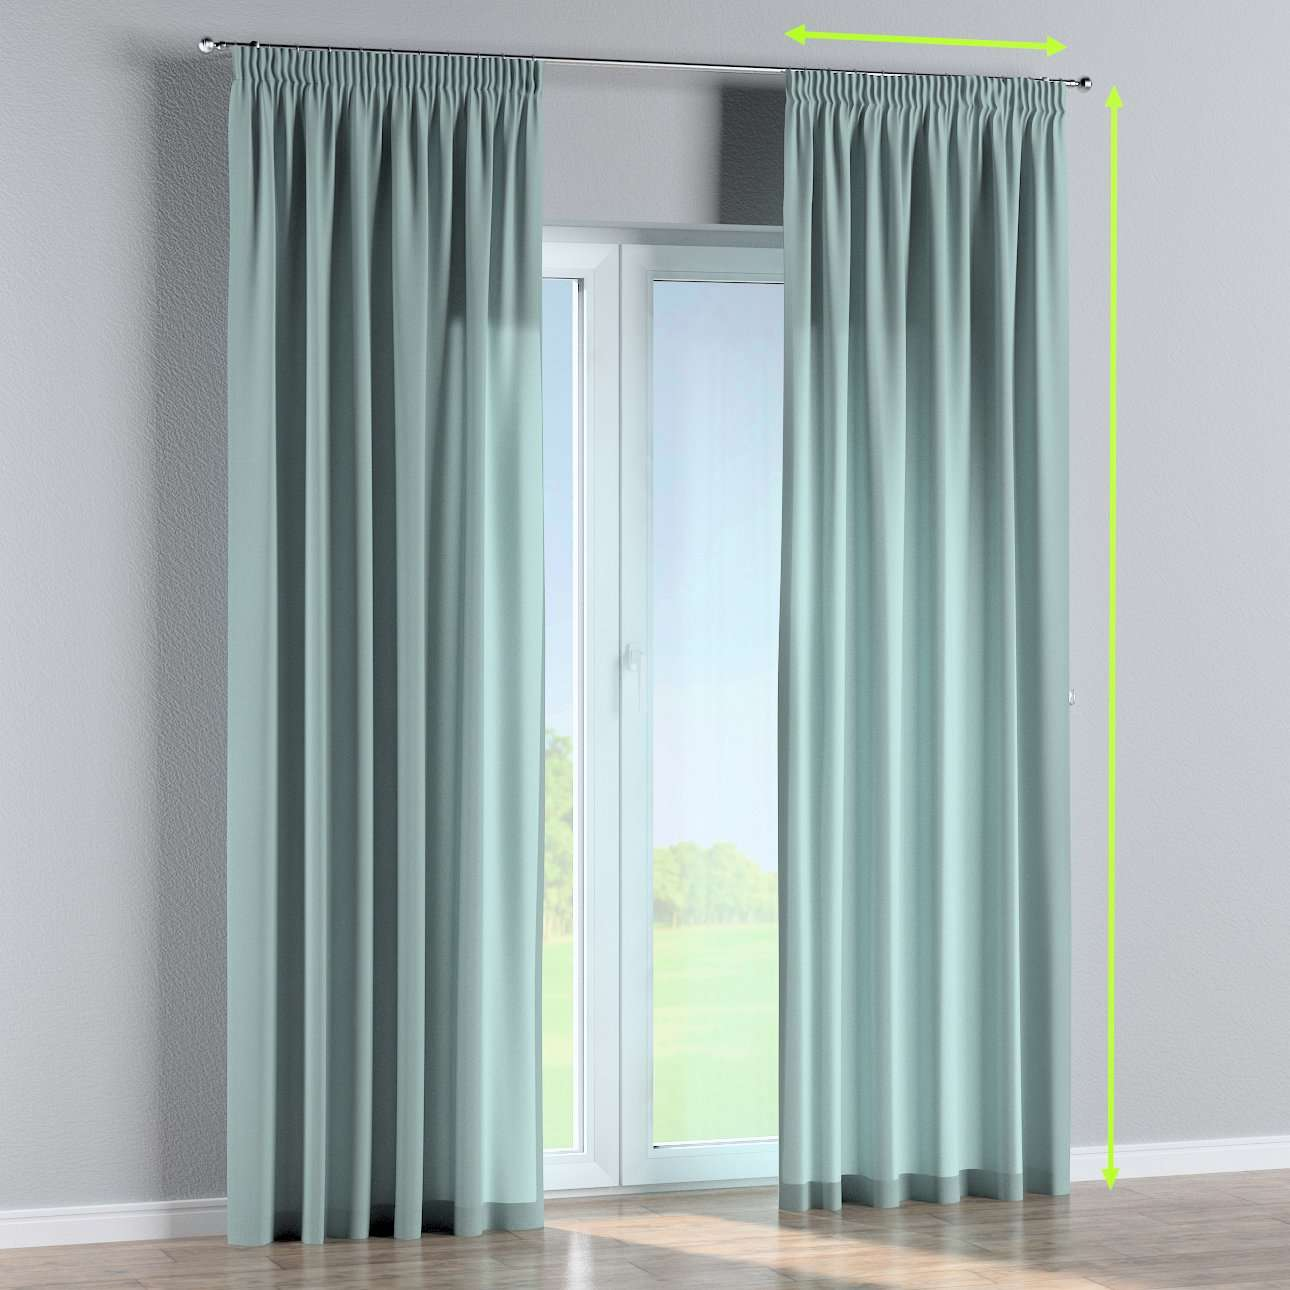 Pencil pleat lined curtains in collection Woolly, fabric: 142-39